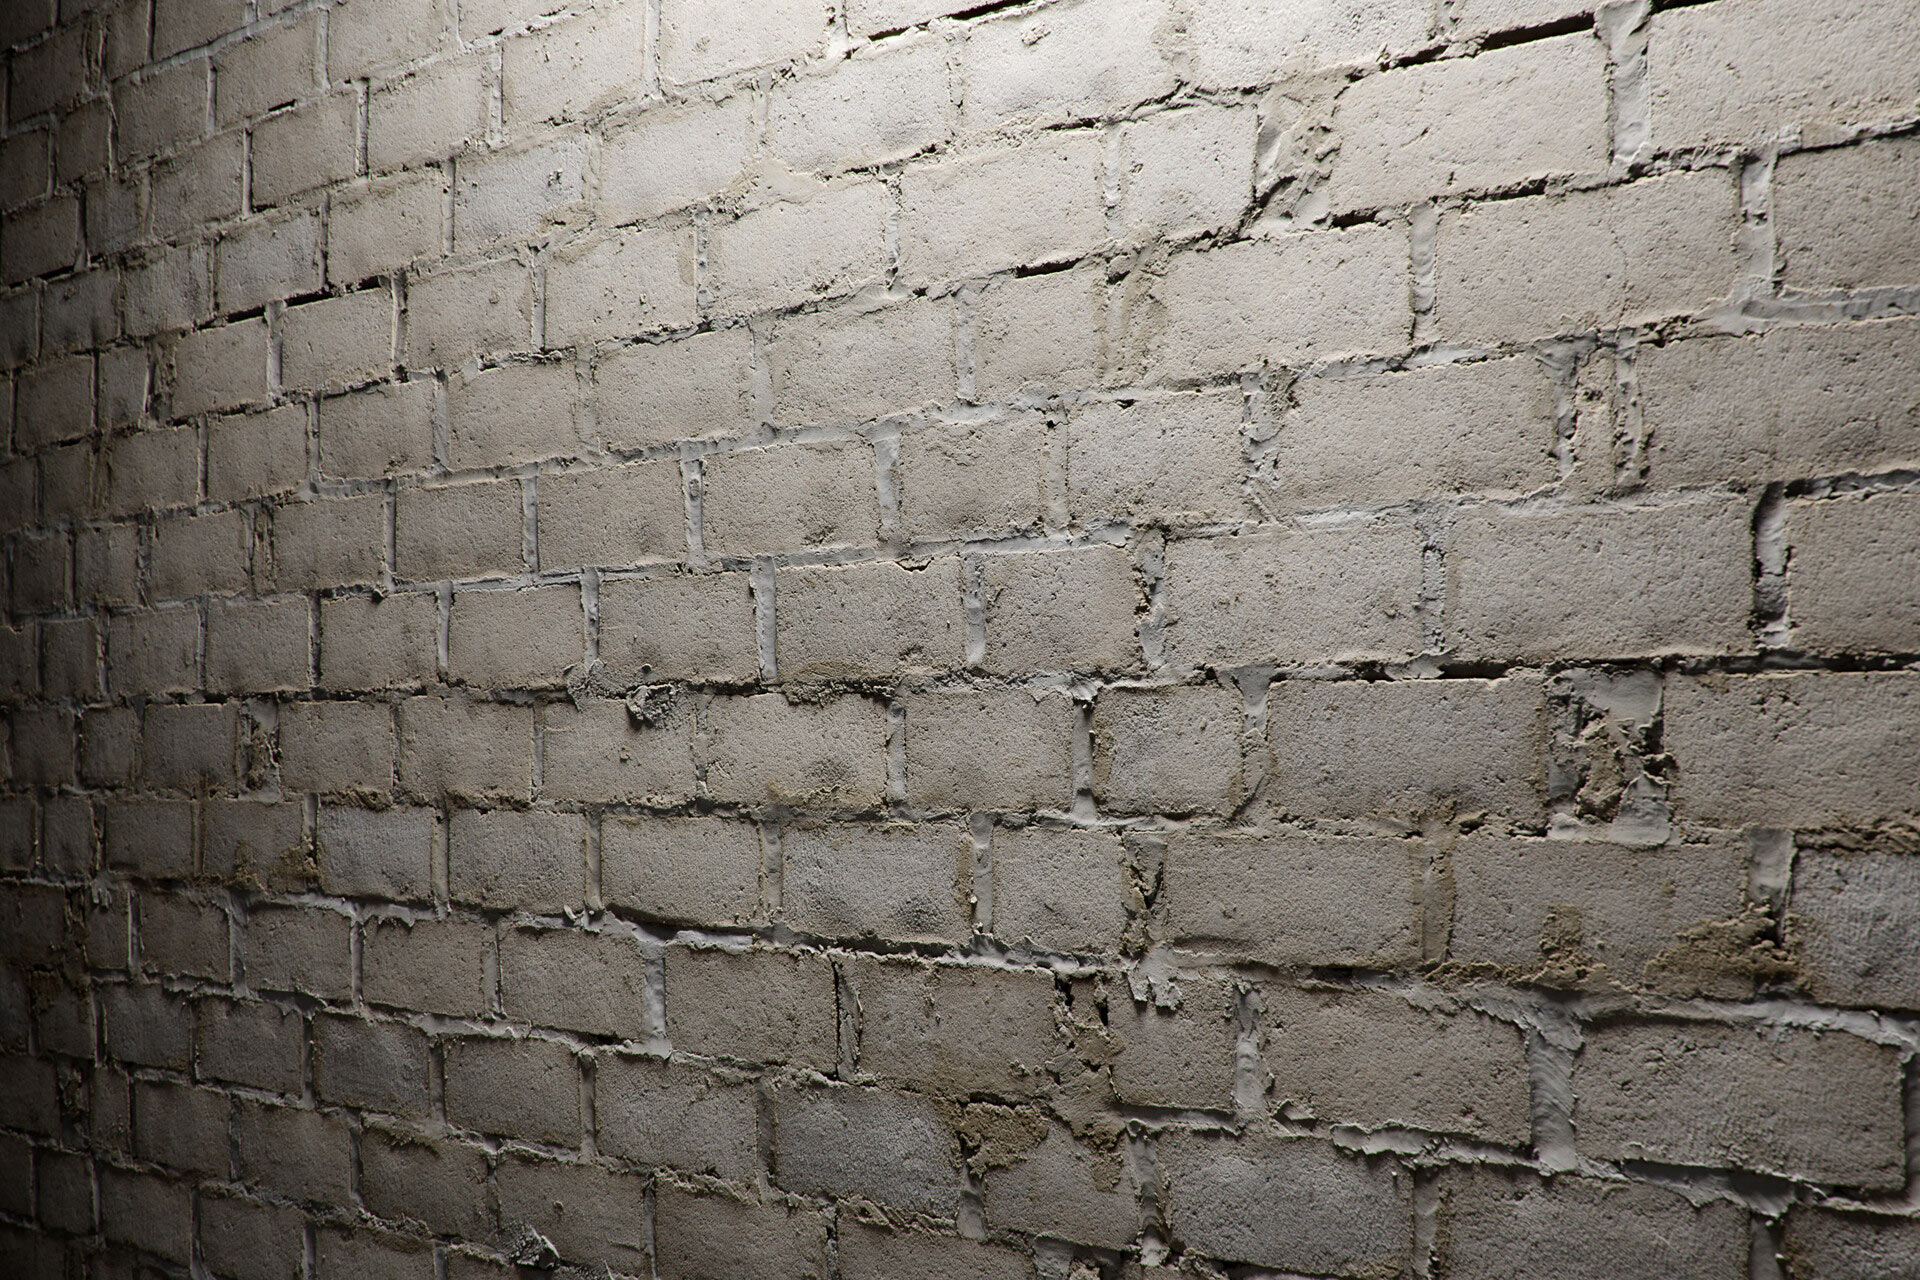 The image shows a wall made using the second sloppy blocks texture provided by Friendly Shade